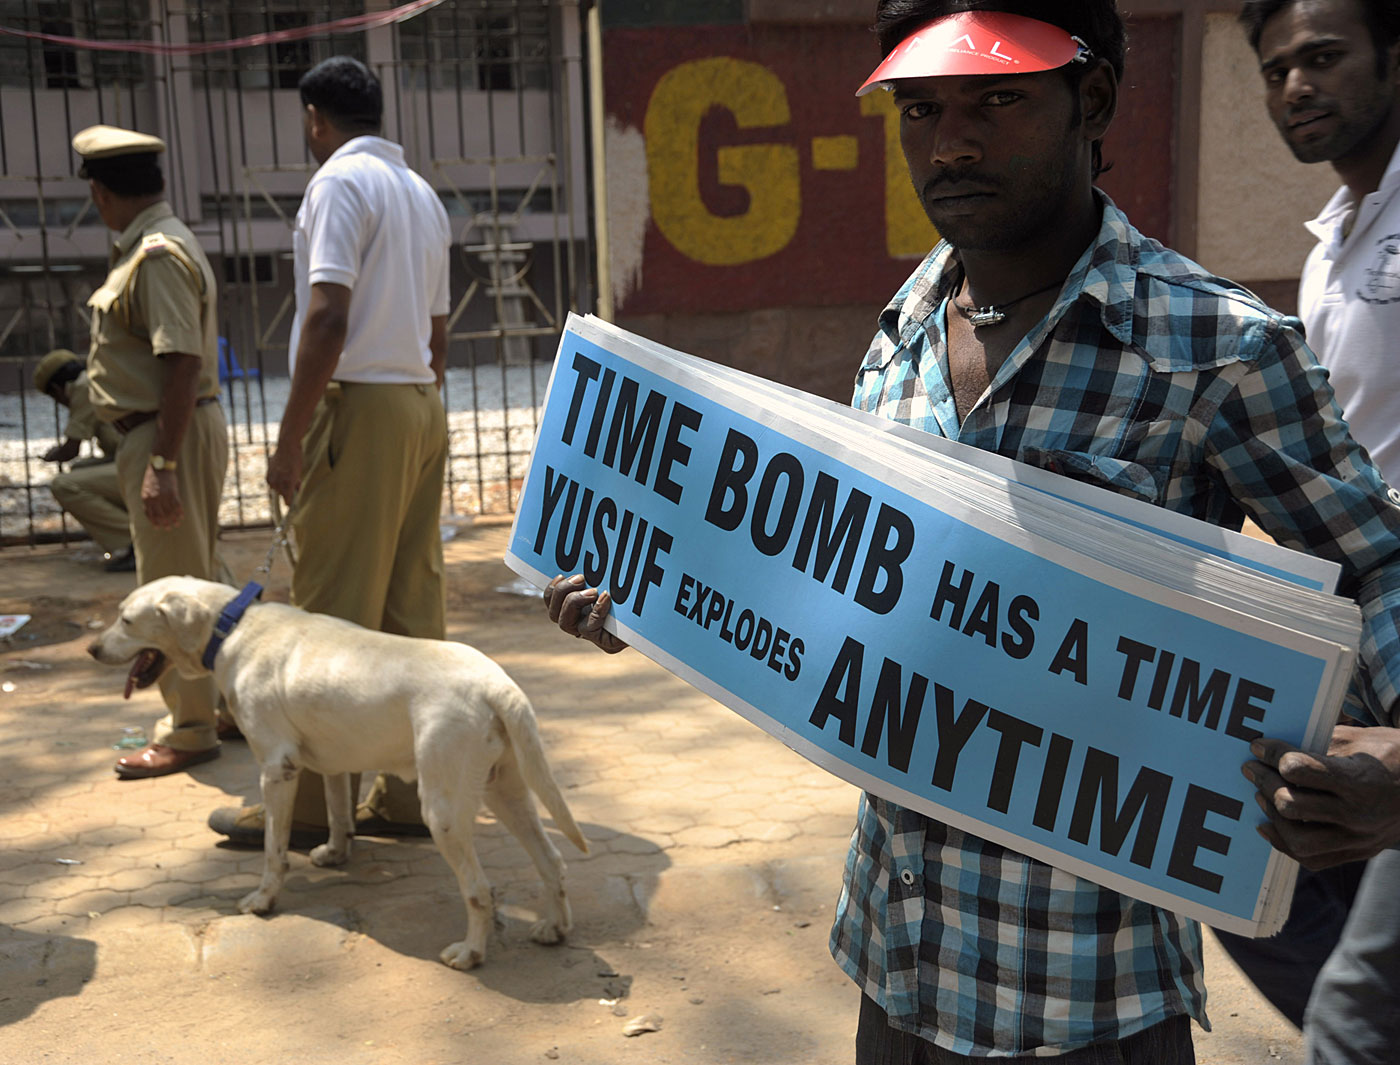 Boom boom: a placard tells of how dangerous Yusuf can be as a batsman, on his day